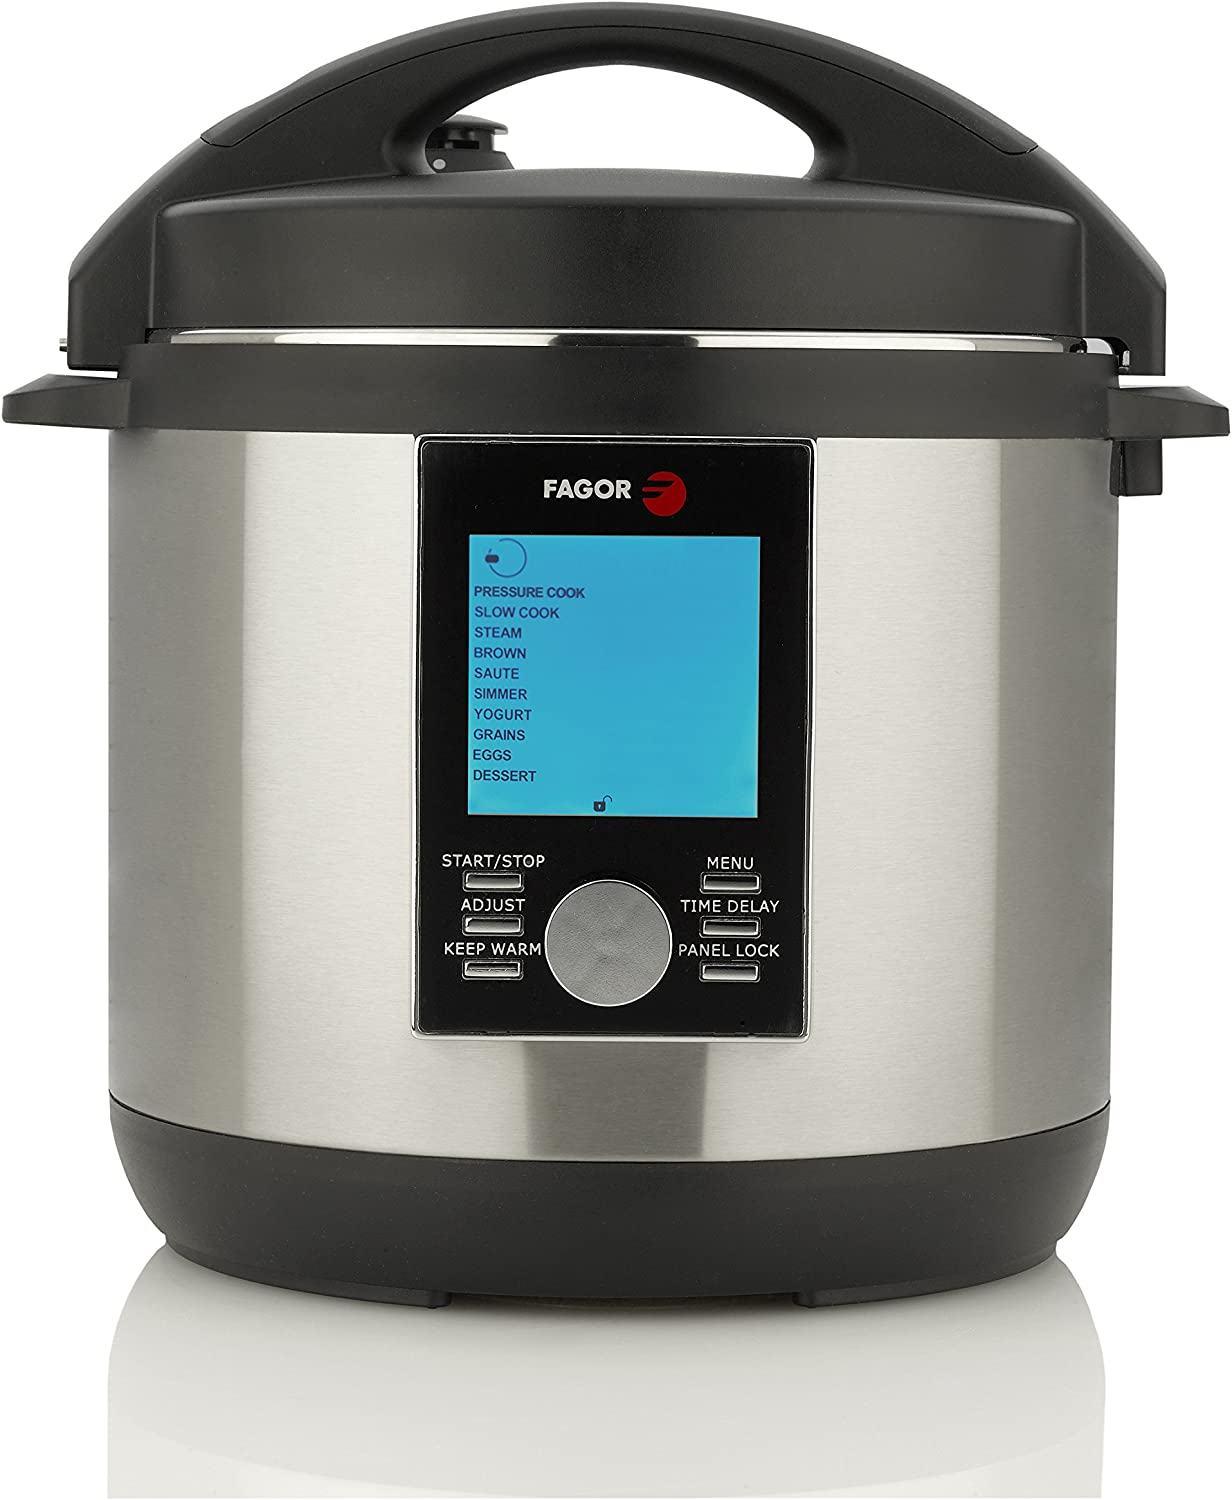 Fagor LUX LCD Multi-Cooker, 6 Quart - Digital Pressure Cooker, Slow Cooker, Rice Cooker and Yogurt Maker with 33 Cooking Programs - Stainless Steel - 935010062